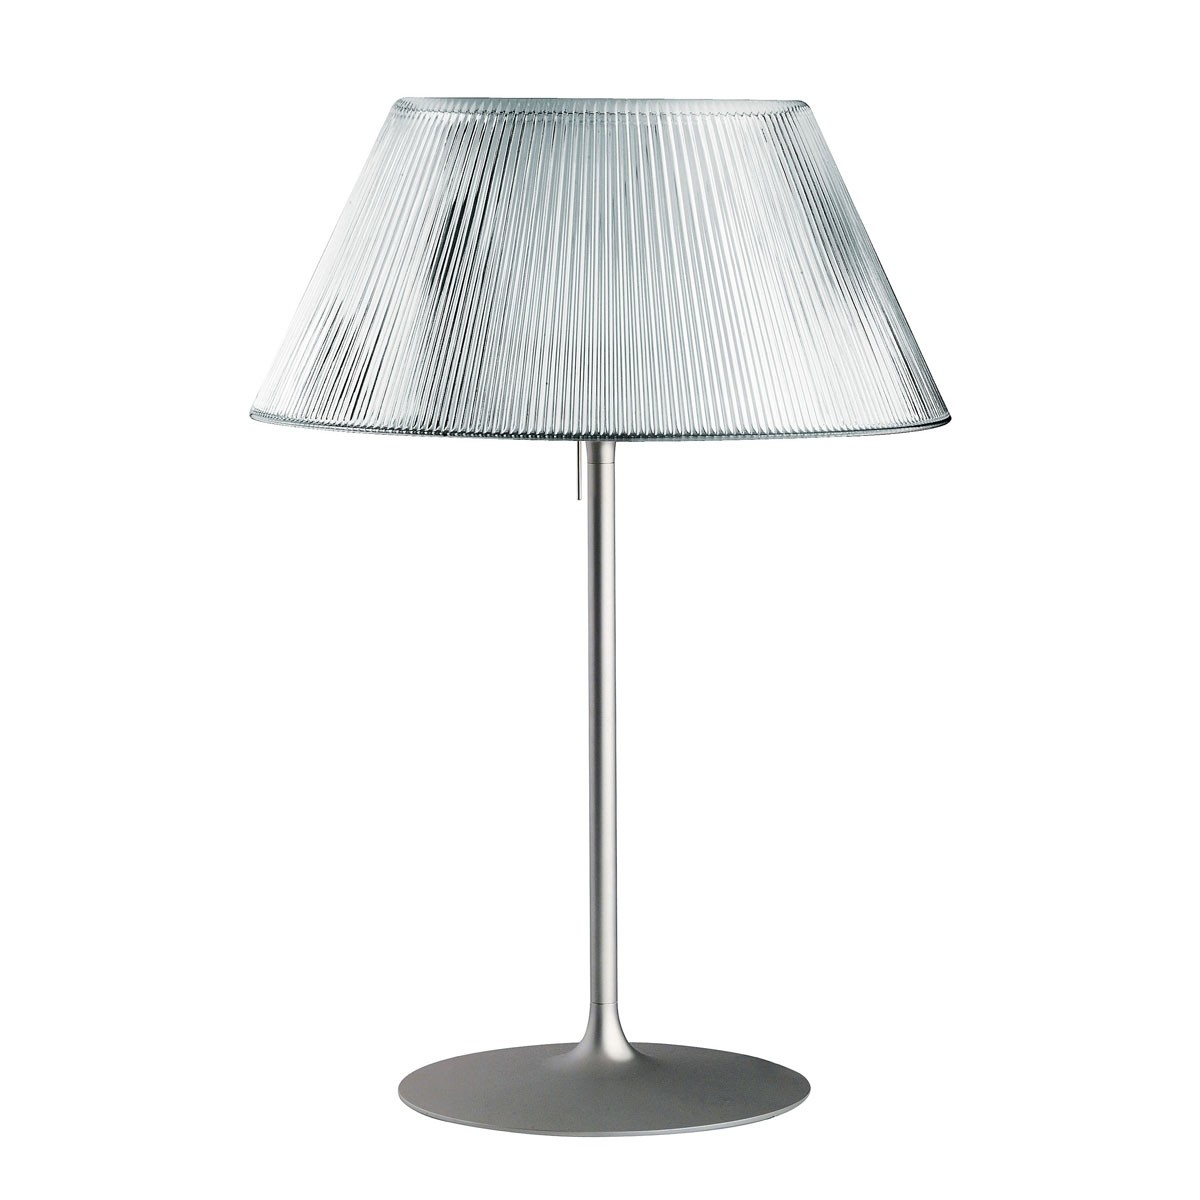 Romeo Moon T2 Lampe de table ø50cm 205W E27 Gris